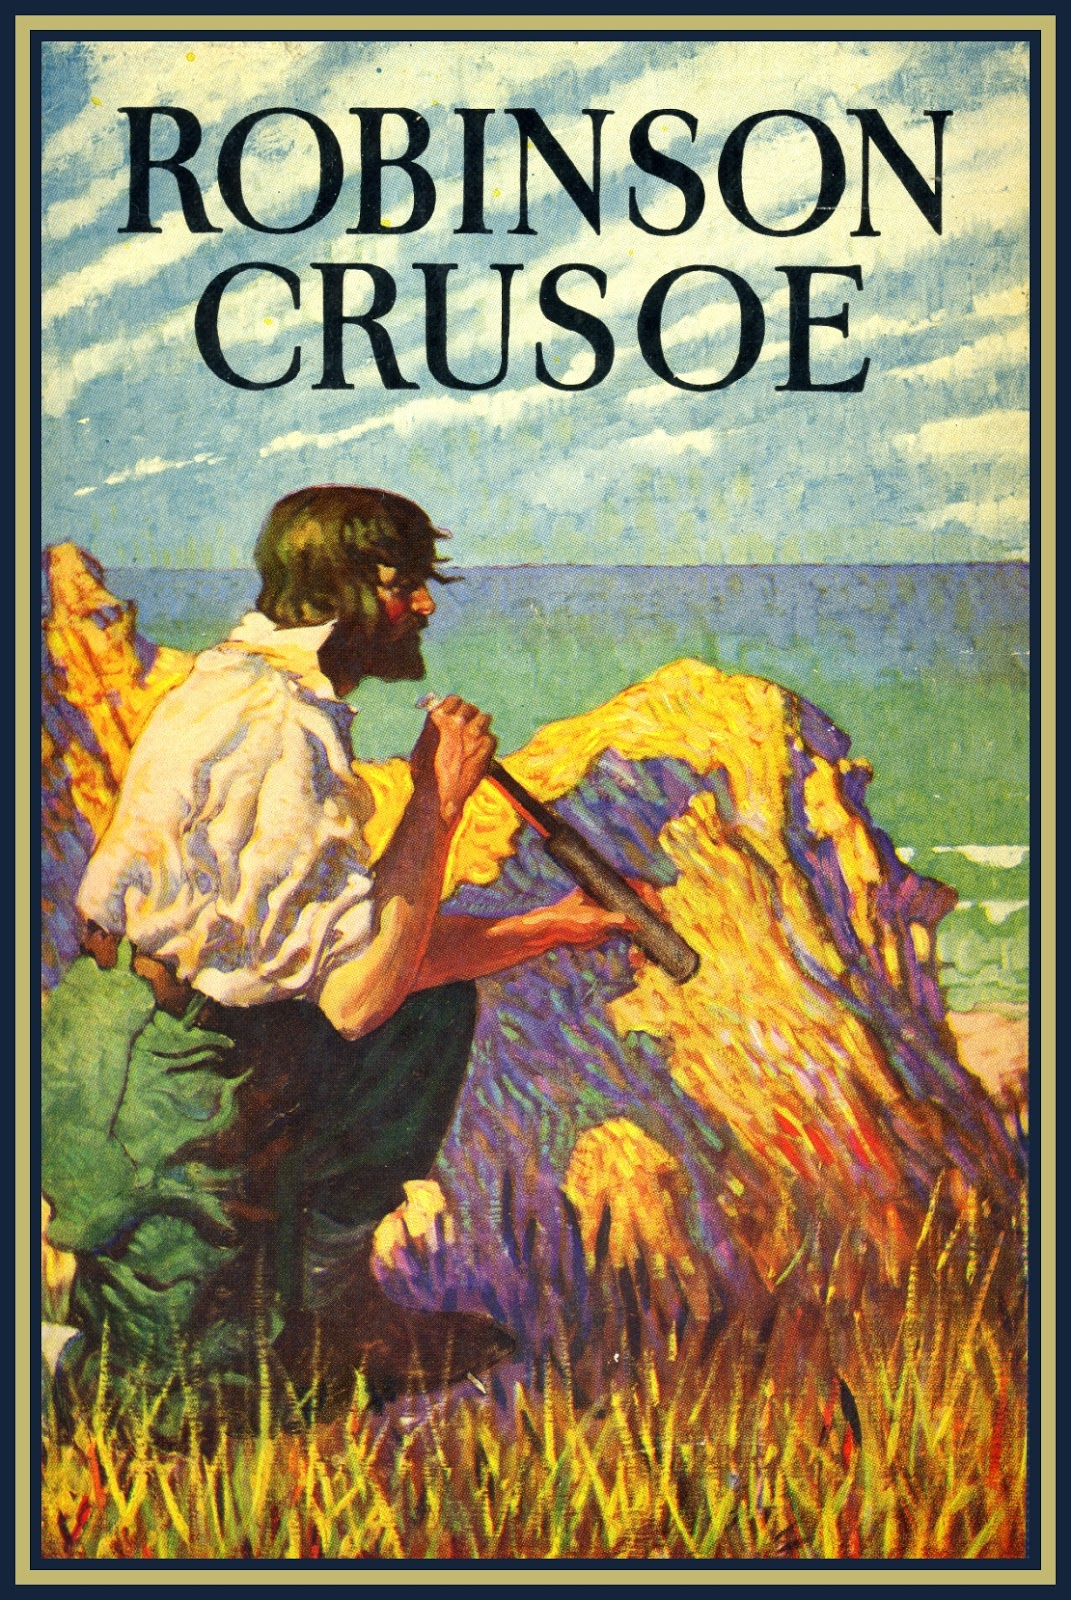 robinson crusoe book vs movie Robinson crusoe study guide contains a biography of daniel defoe, literature essays, a complete e-text, quiz questions, major themes, characters, and a full summary and analysis.